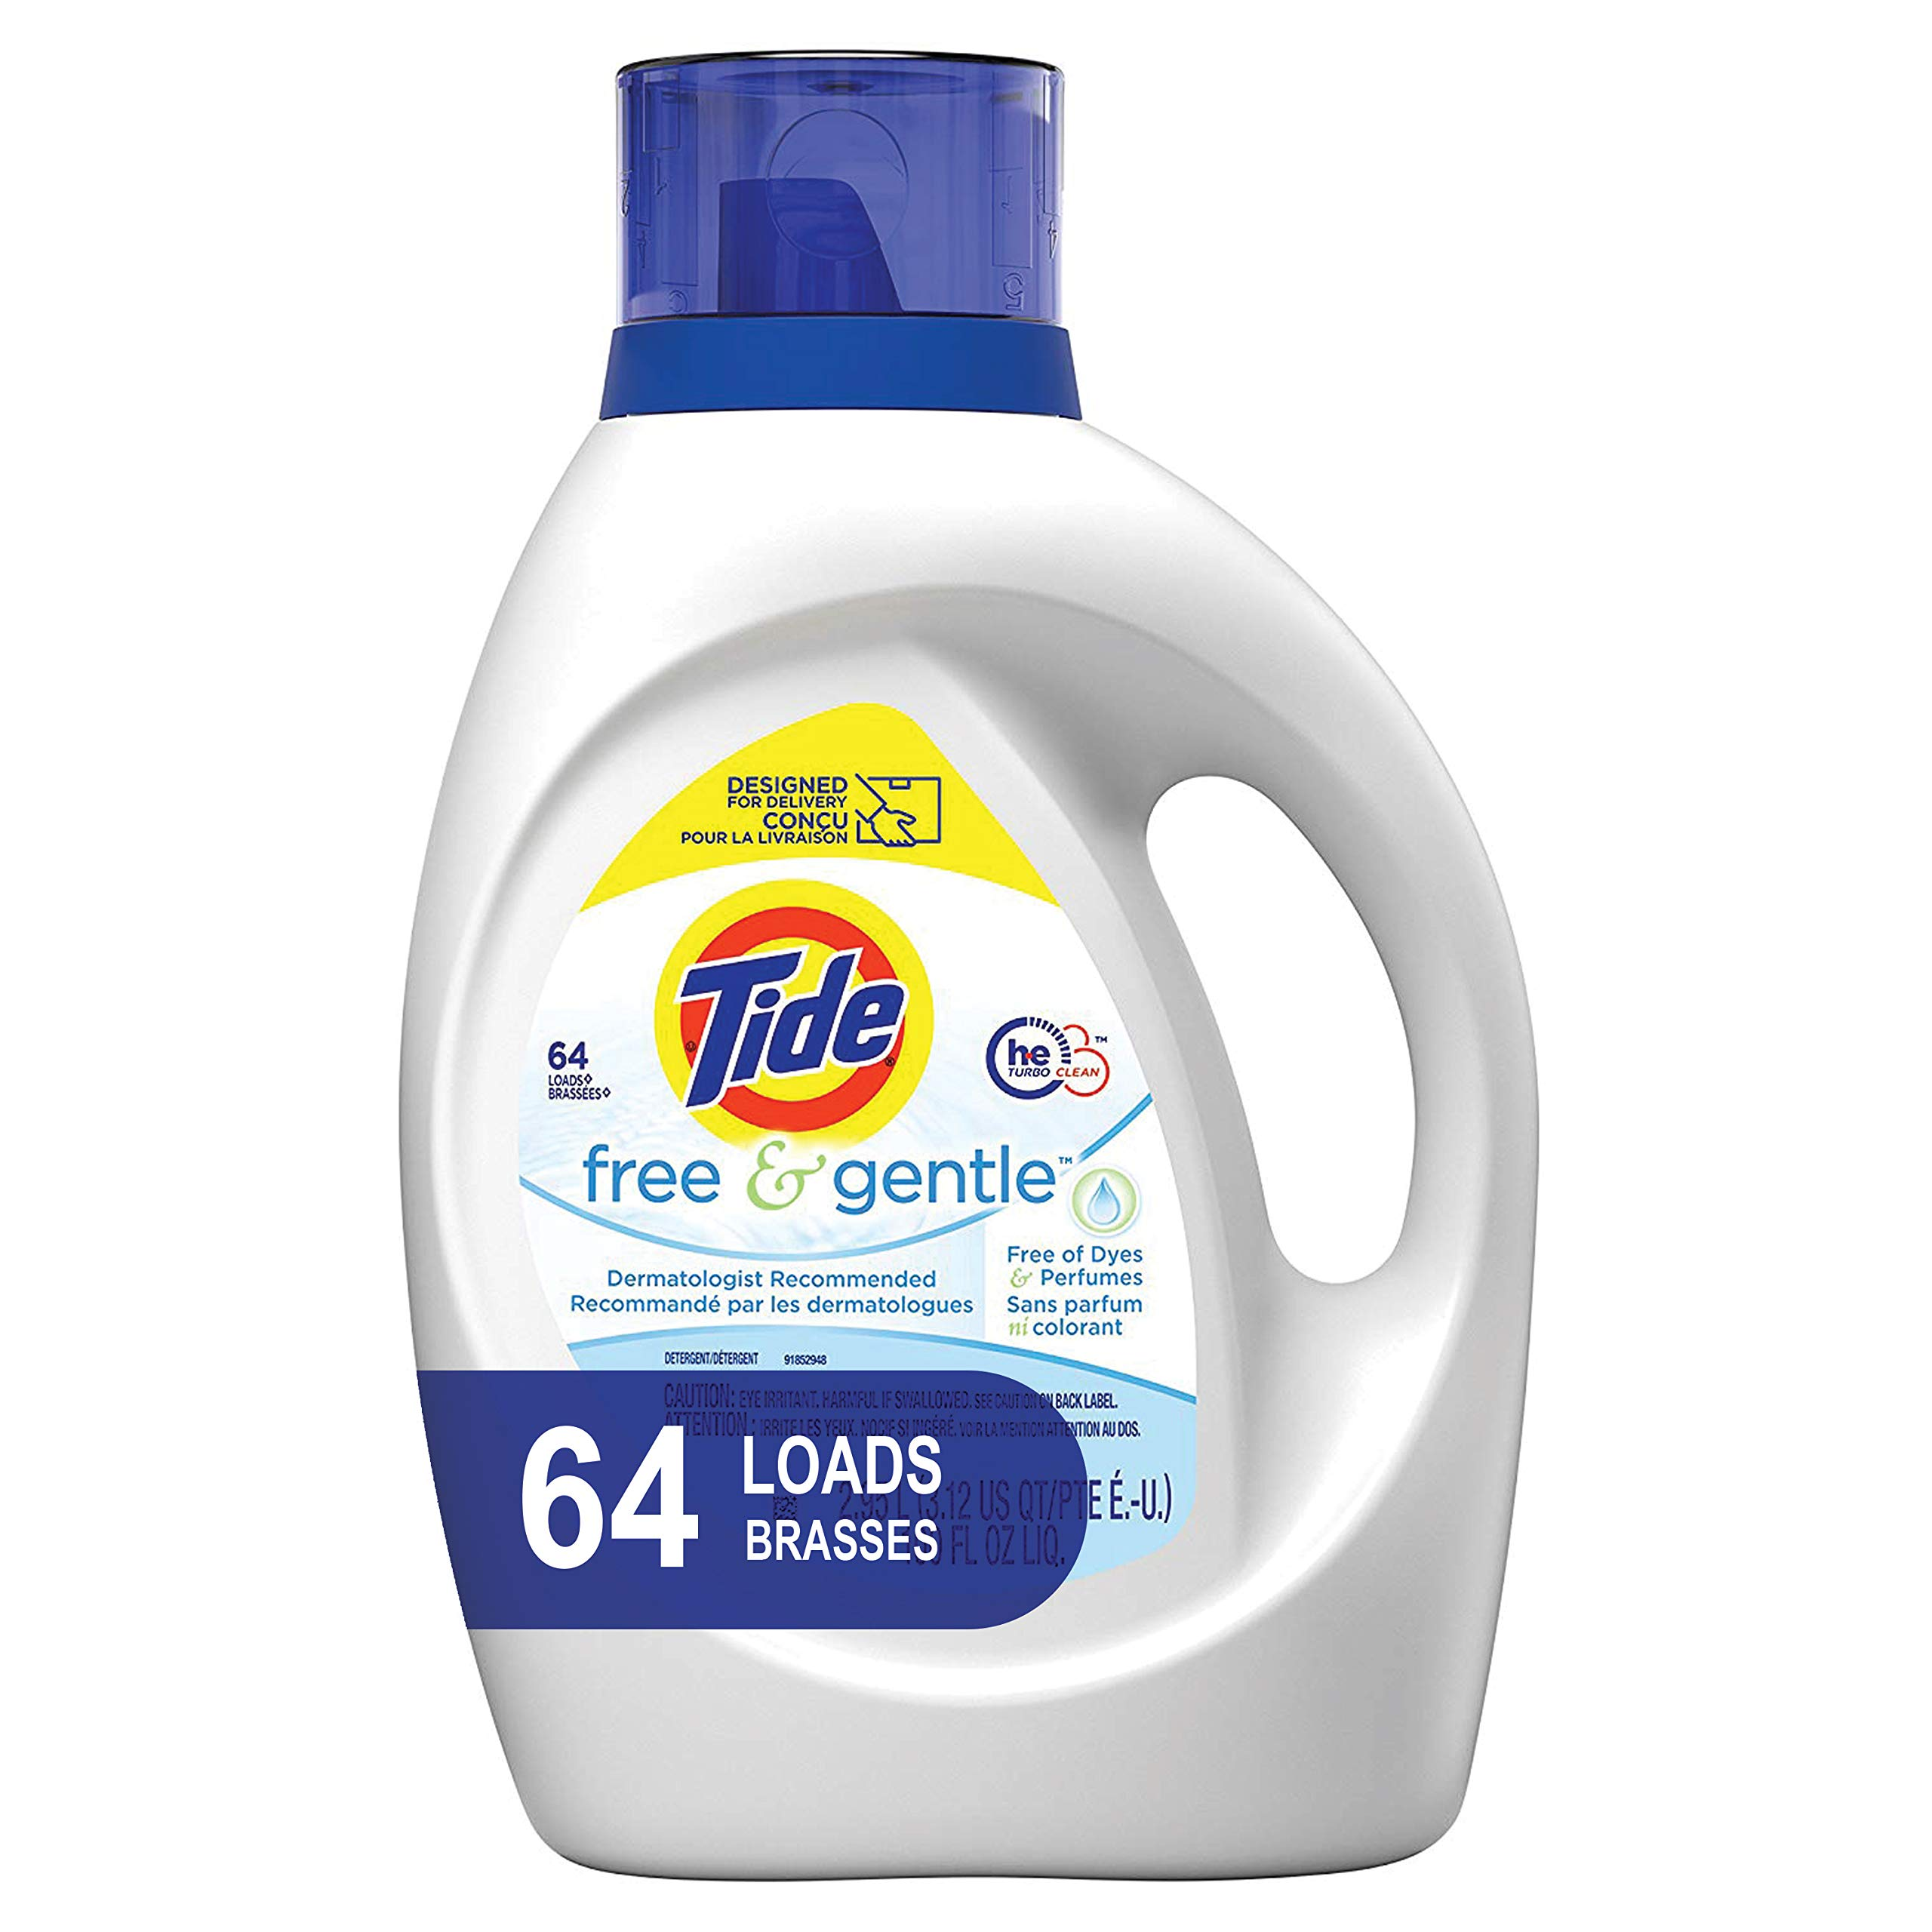 Tide Free and Gentle HE Laundry Detergent Liquid, 100 oz, 64 Loads, Unscented and Hypoallergenic for Sensitive Skin, Free and Clear of Dyes and Perfumes (Packaging May Vary) by Tide